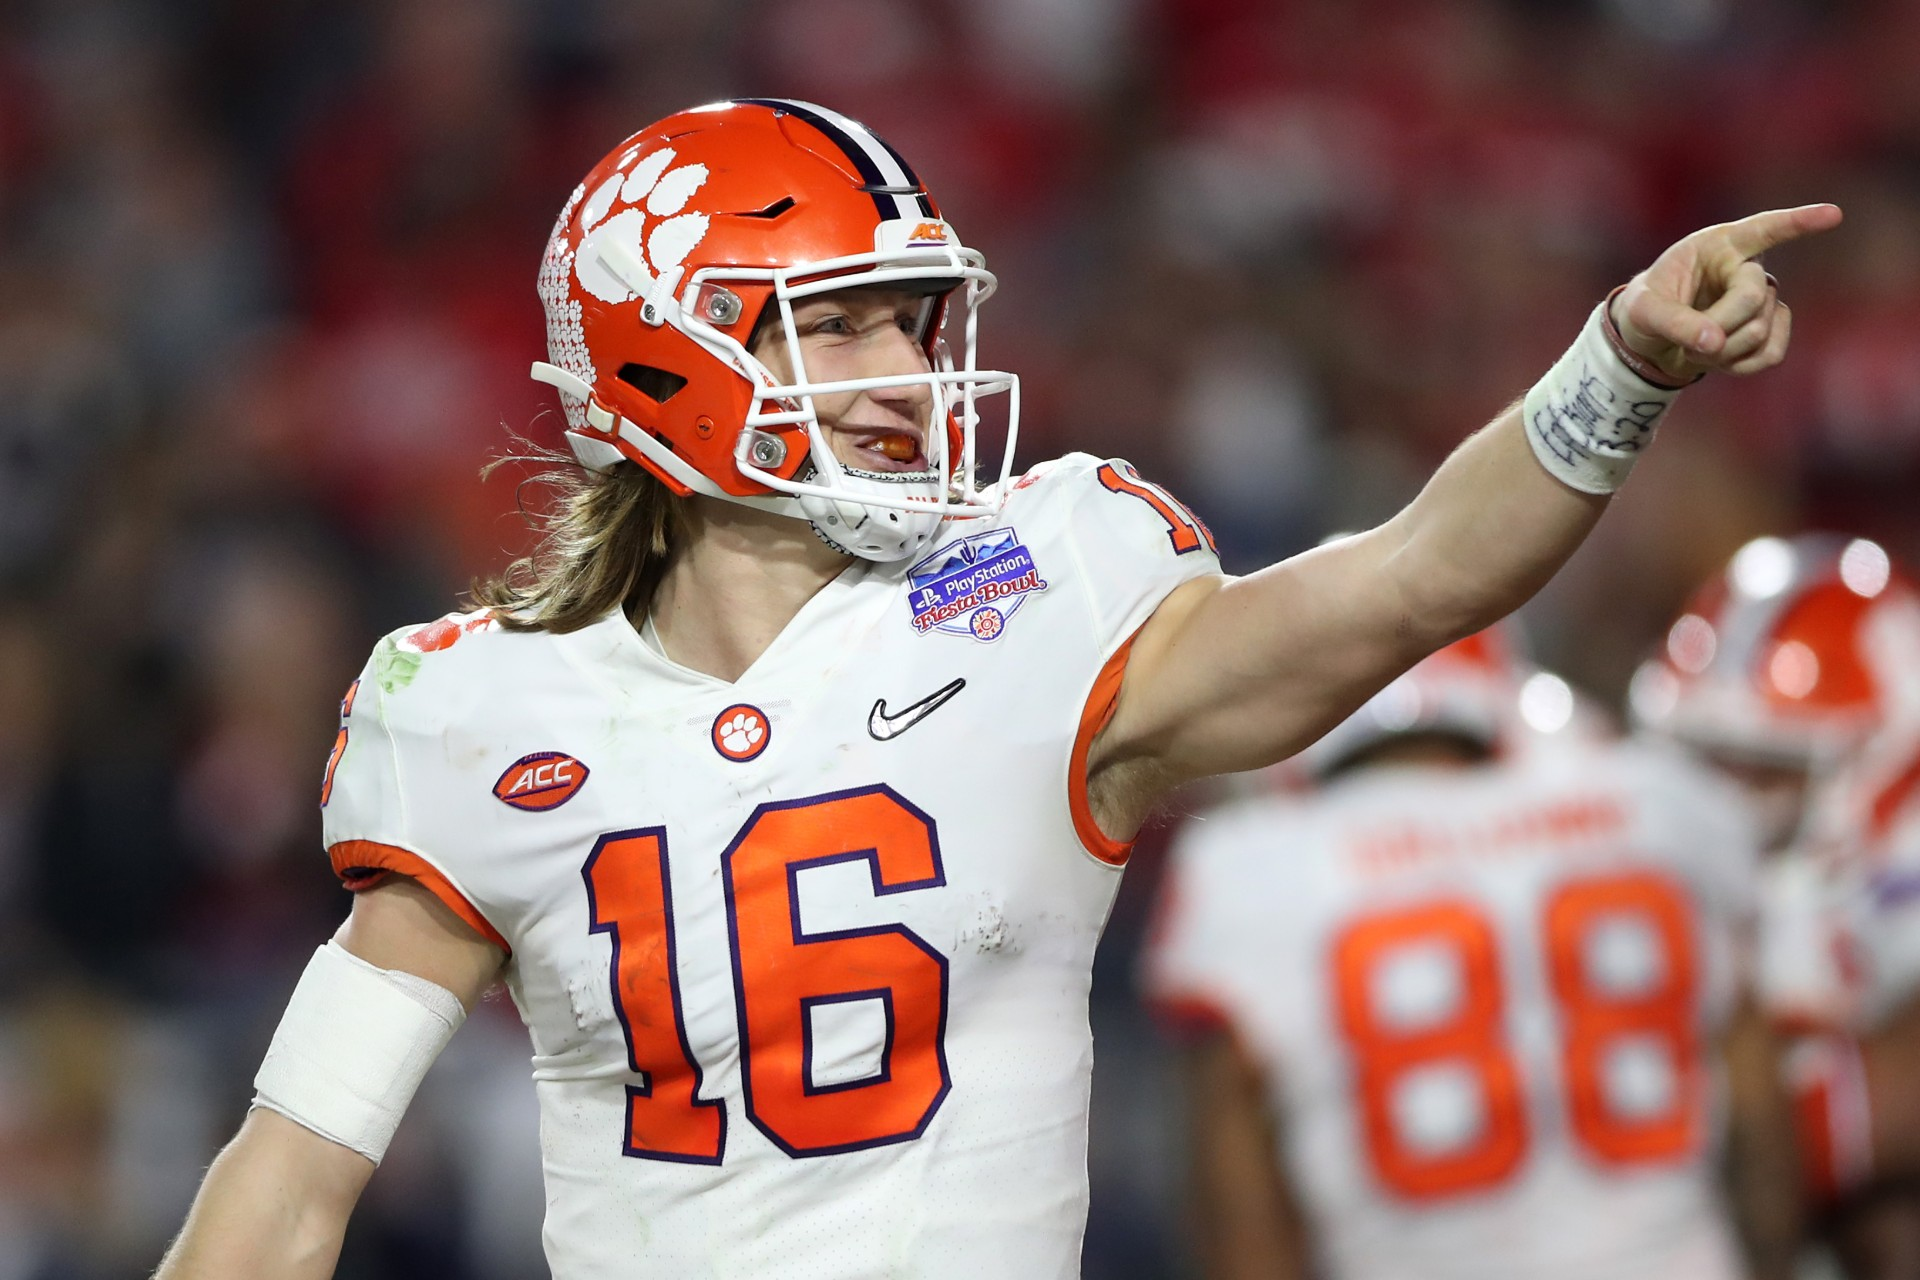 Trevor Lawrence noncommittal about Clemson vs NFL Draft plans for 2021 Who knows